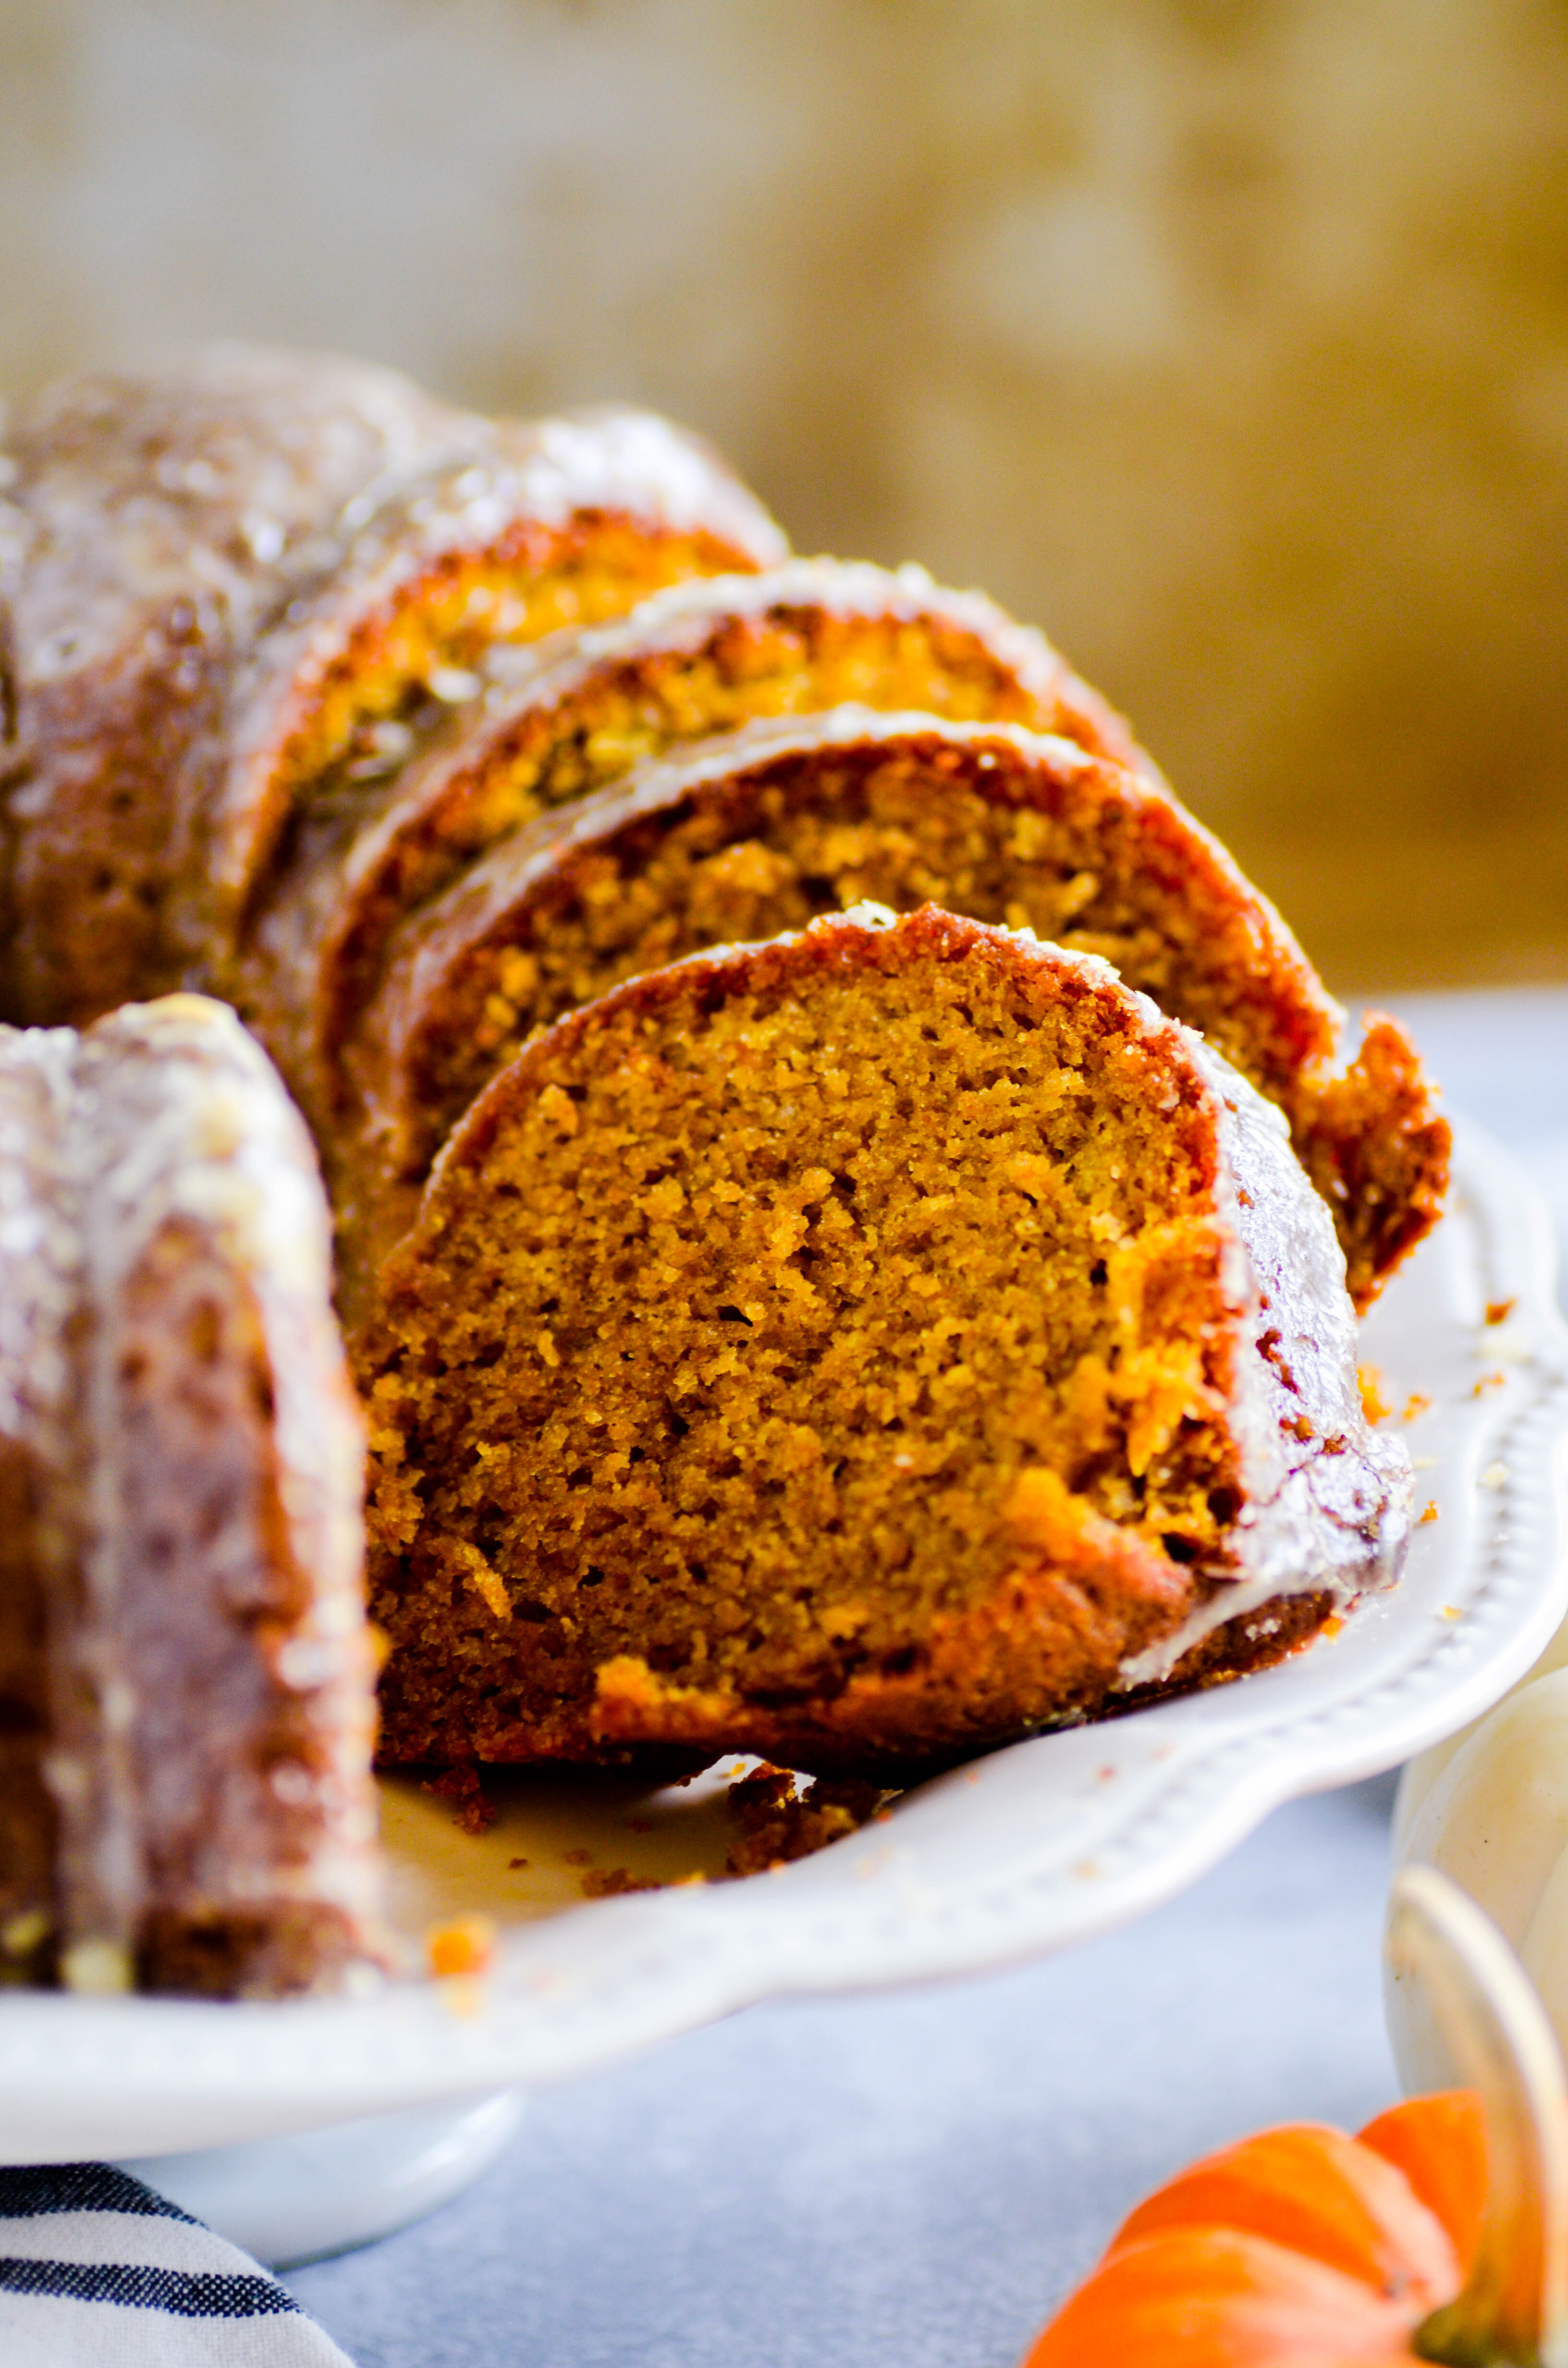 This Whole Wheat Pumpkin Bundt Cake with Maple Glaze is your new go-to Fall recipe for EVERYTHING.